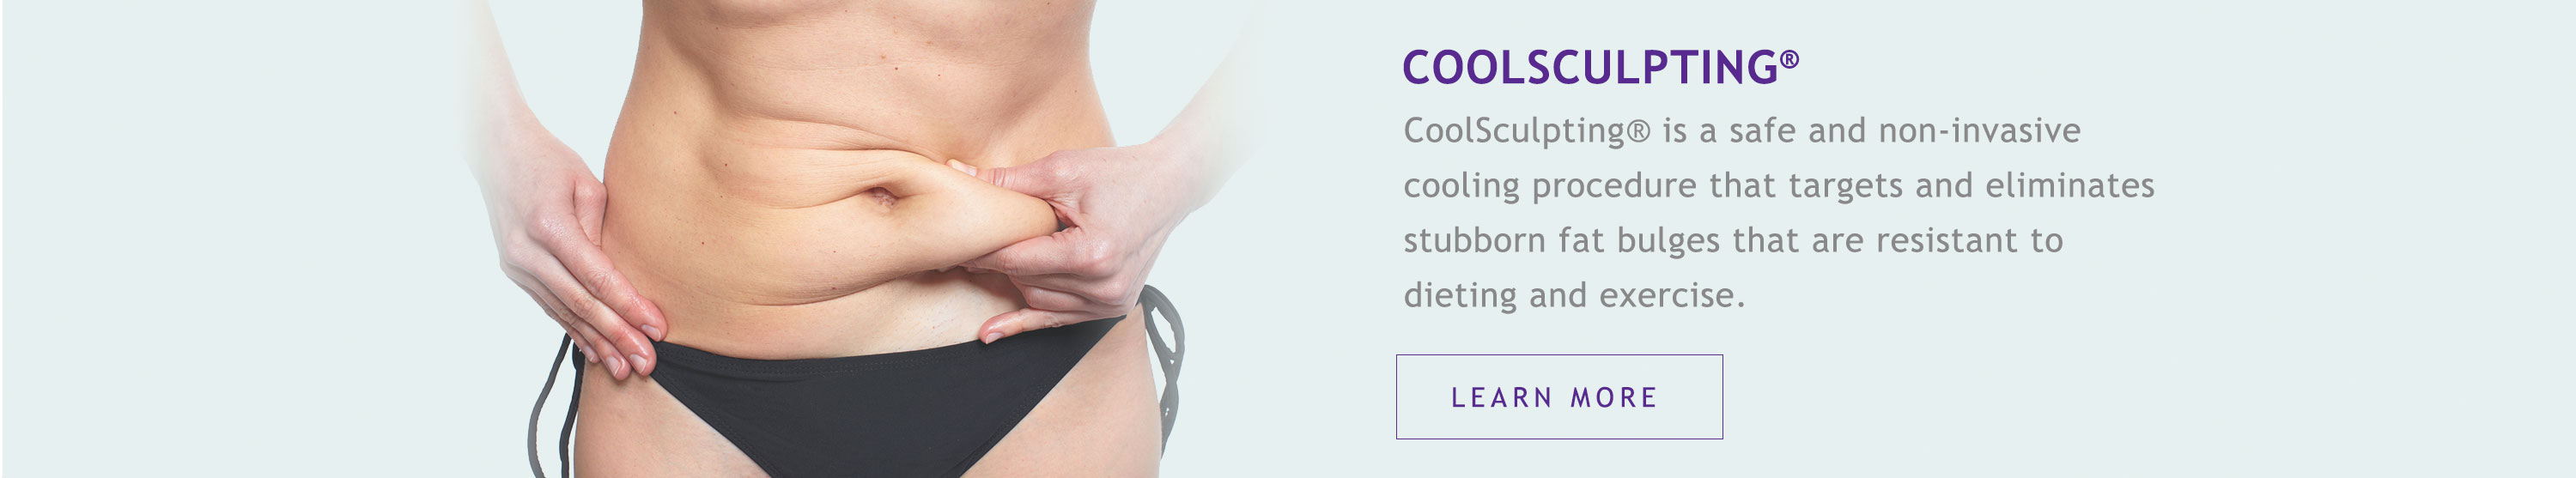 Coolsculpting: A safe and non-invasive cooling procedure that targets and eliminates stubborn fat bulges that are resistant to dieting and exercise